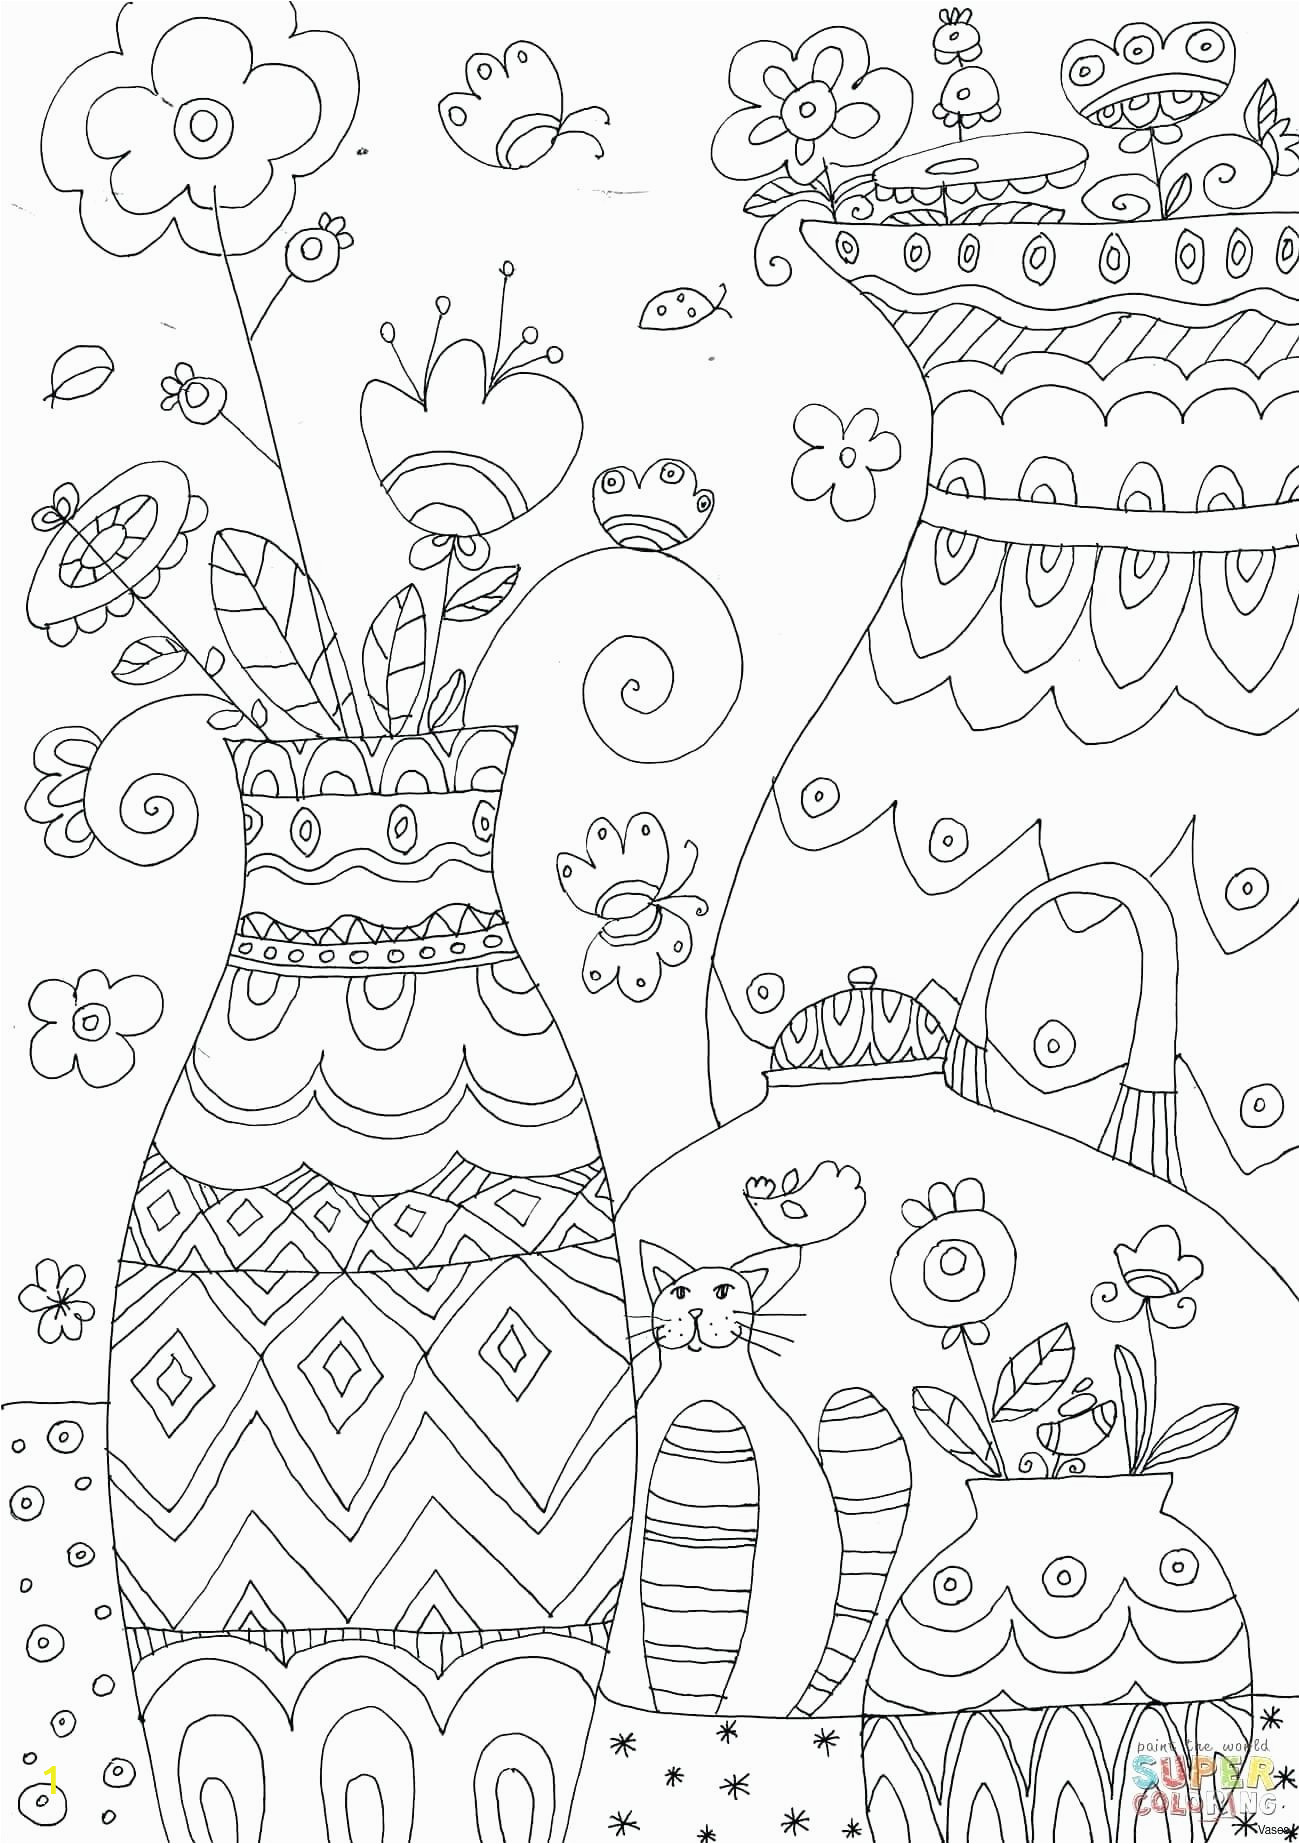 flower color pages blank coloring inspirational beautiful luxury garden for adults colouring pictures pages